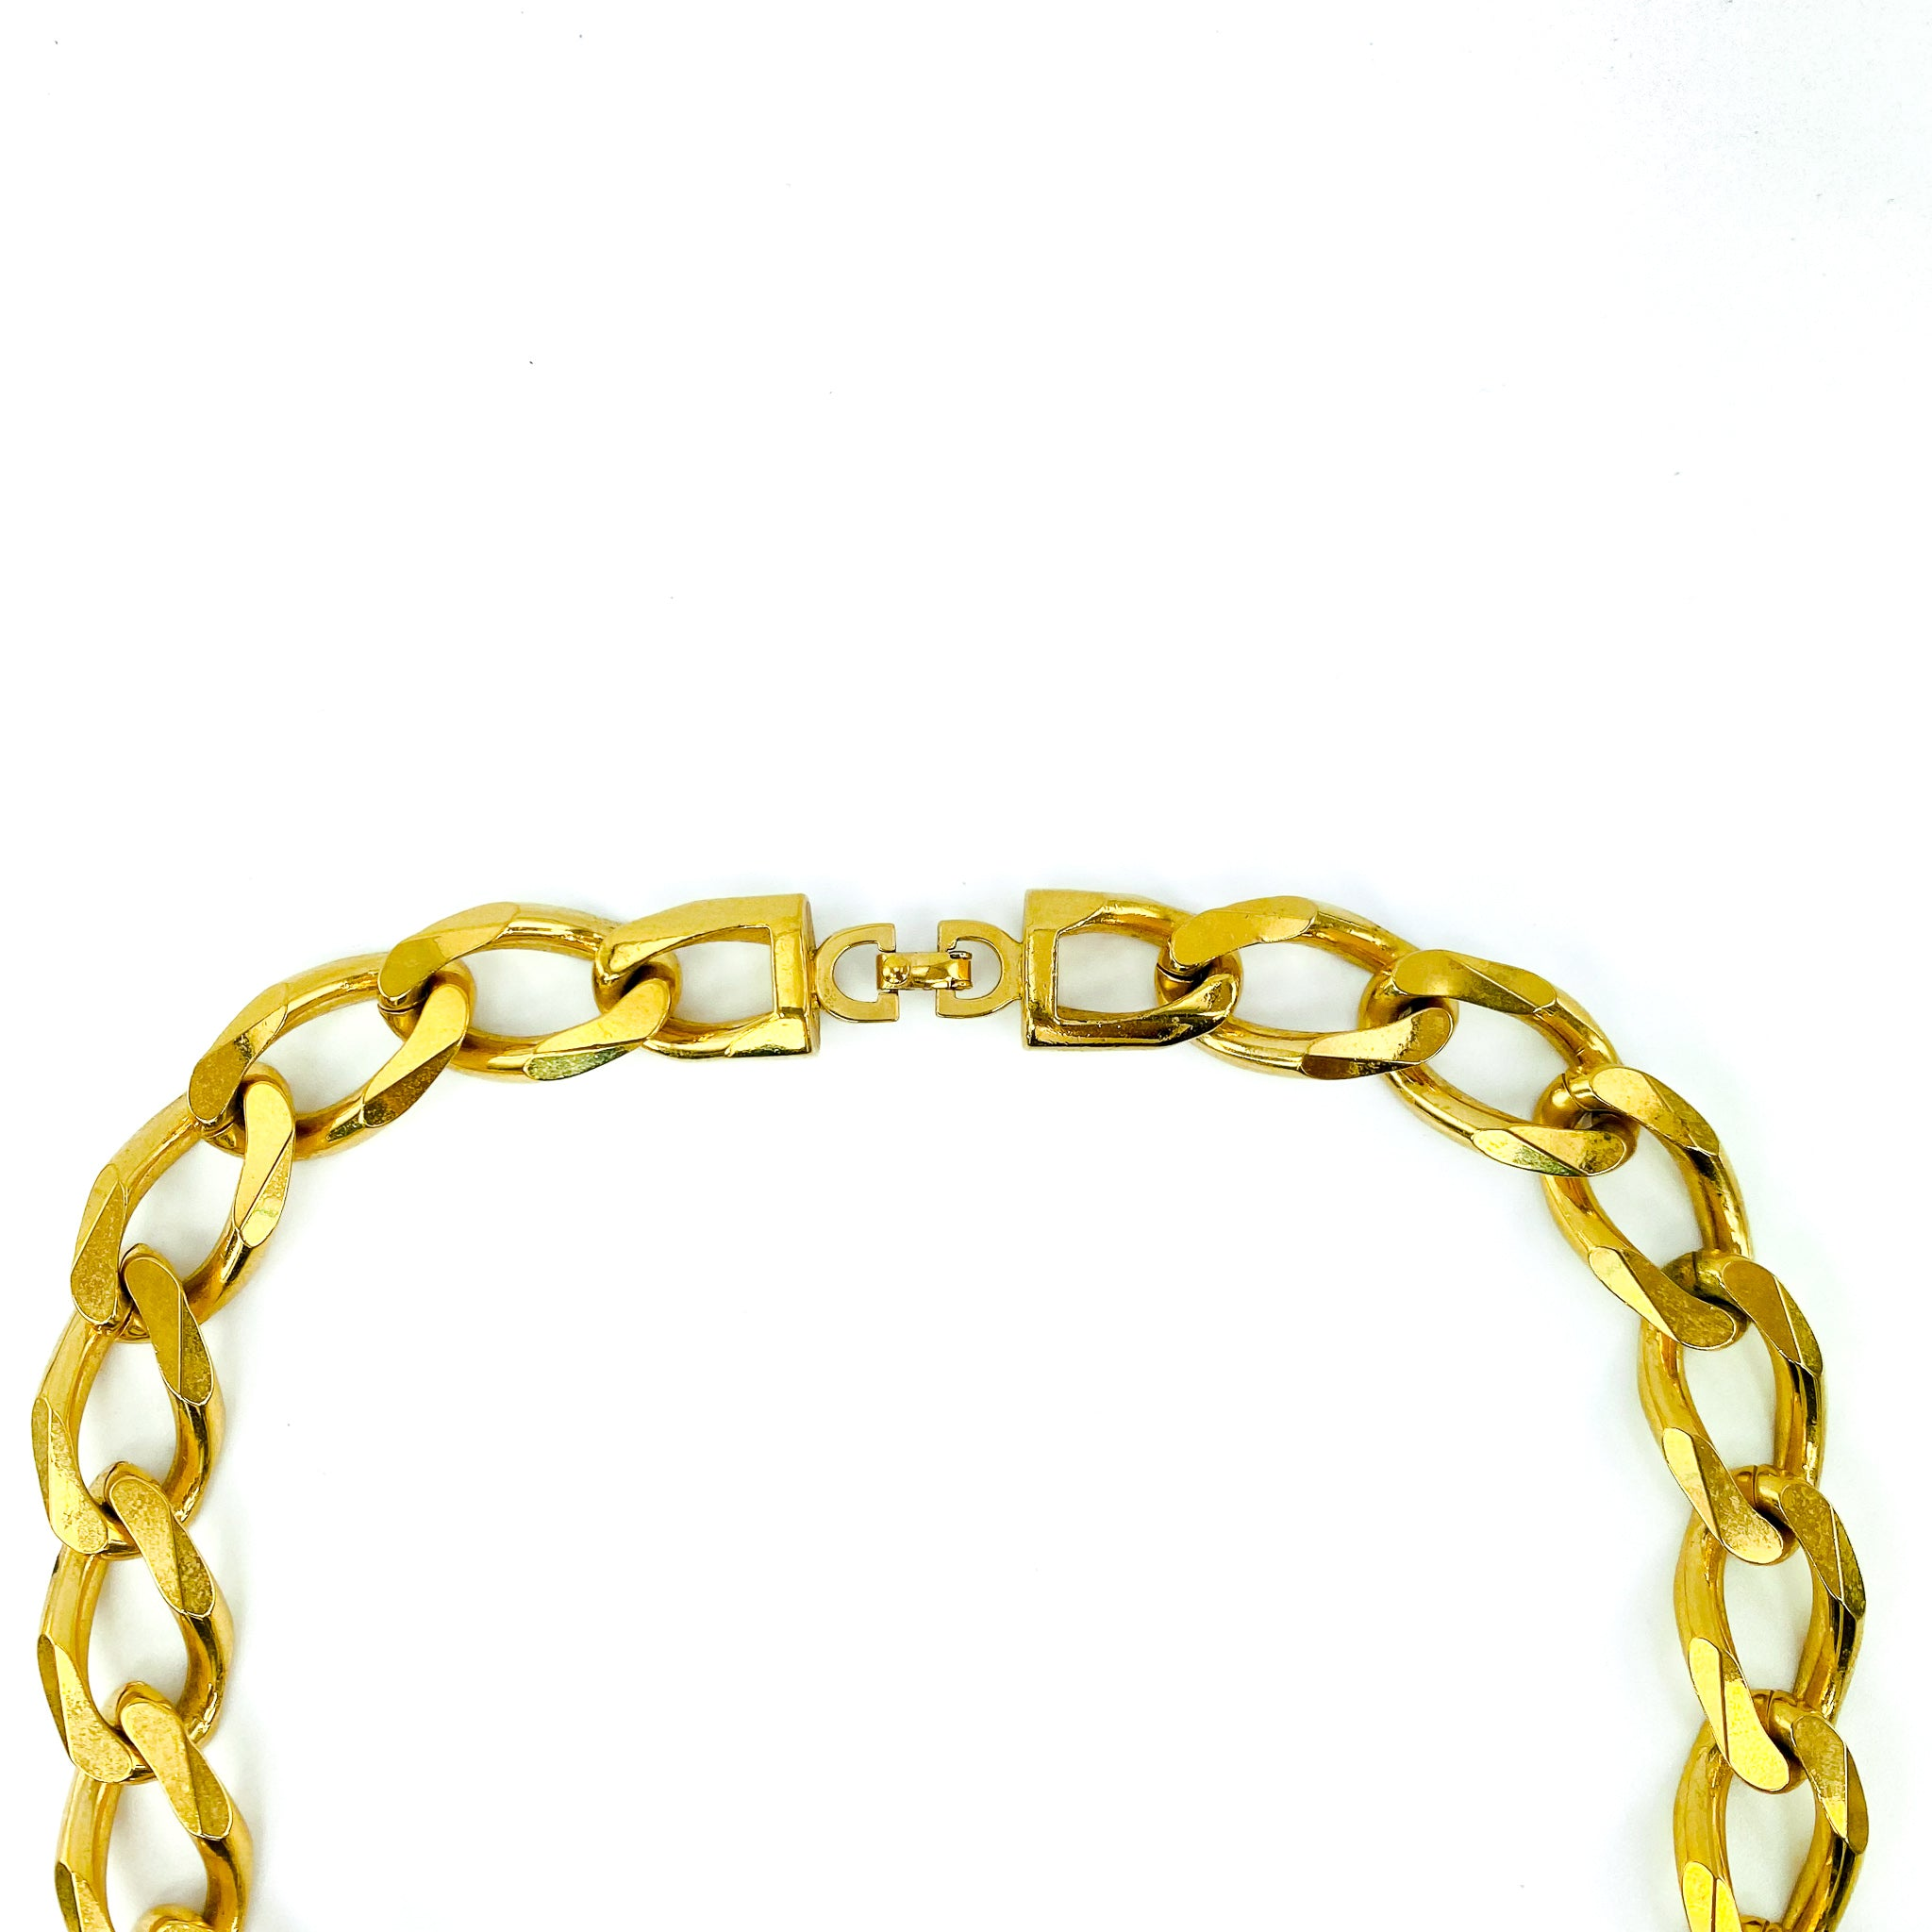 Christian Dior Vintage Gold Tone Pendant Necklace